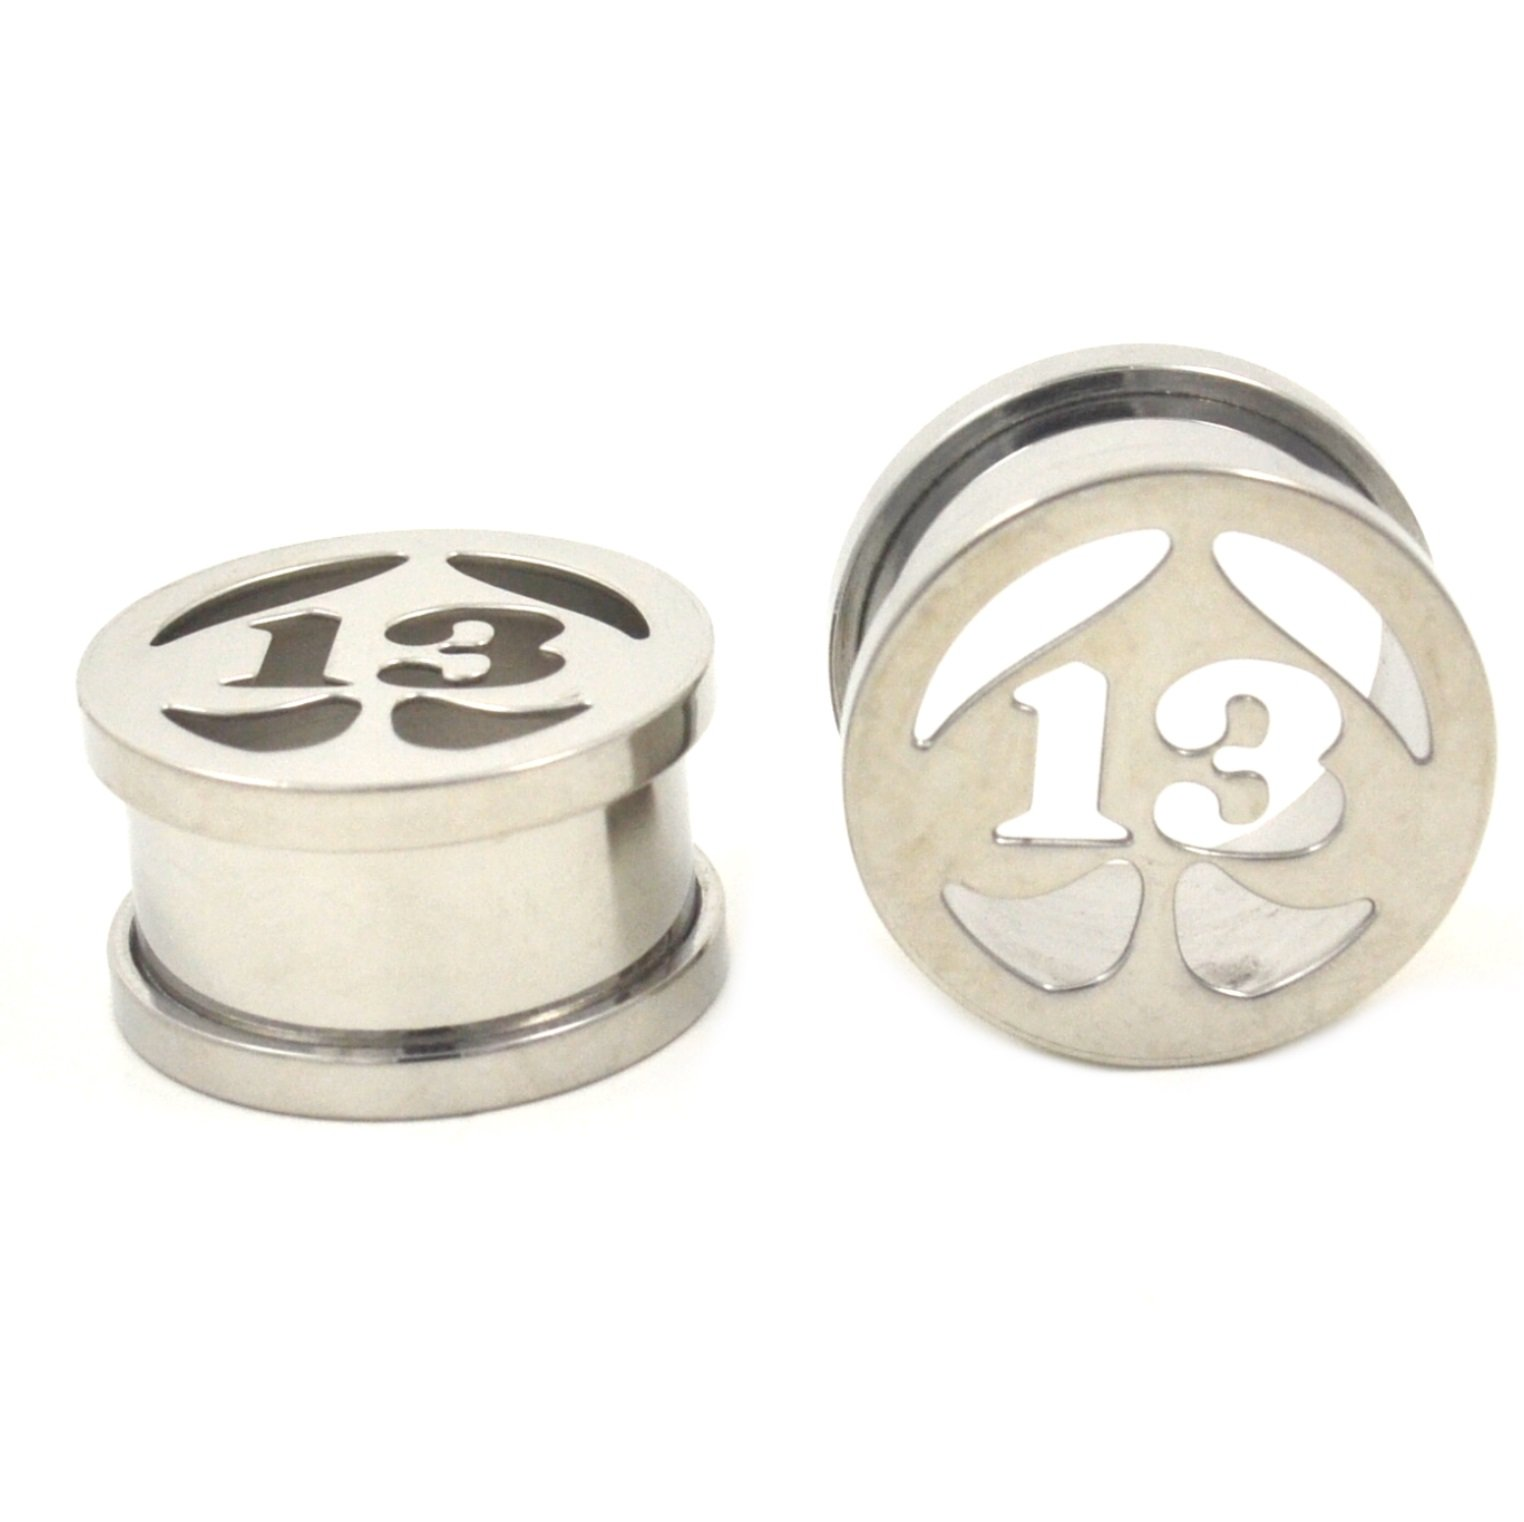 Pair (2) Stainless Steel Lucky # 13 Spade Ear Plugs Hollow Screw-Fit Tunnels - 9/16'' 14MM